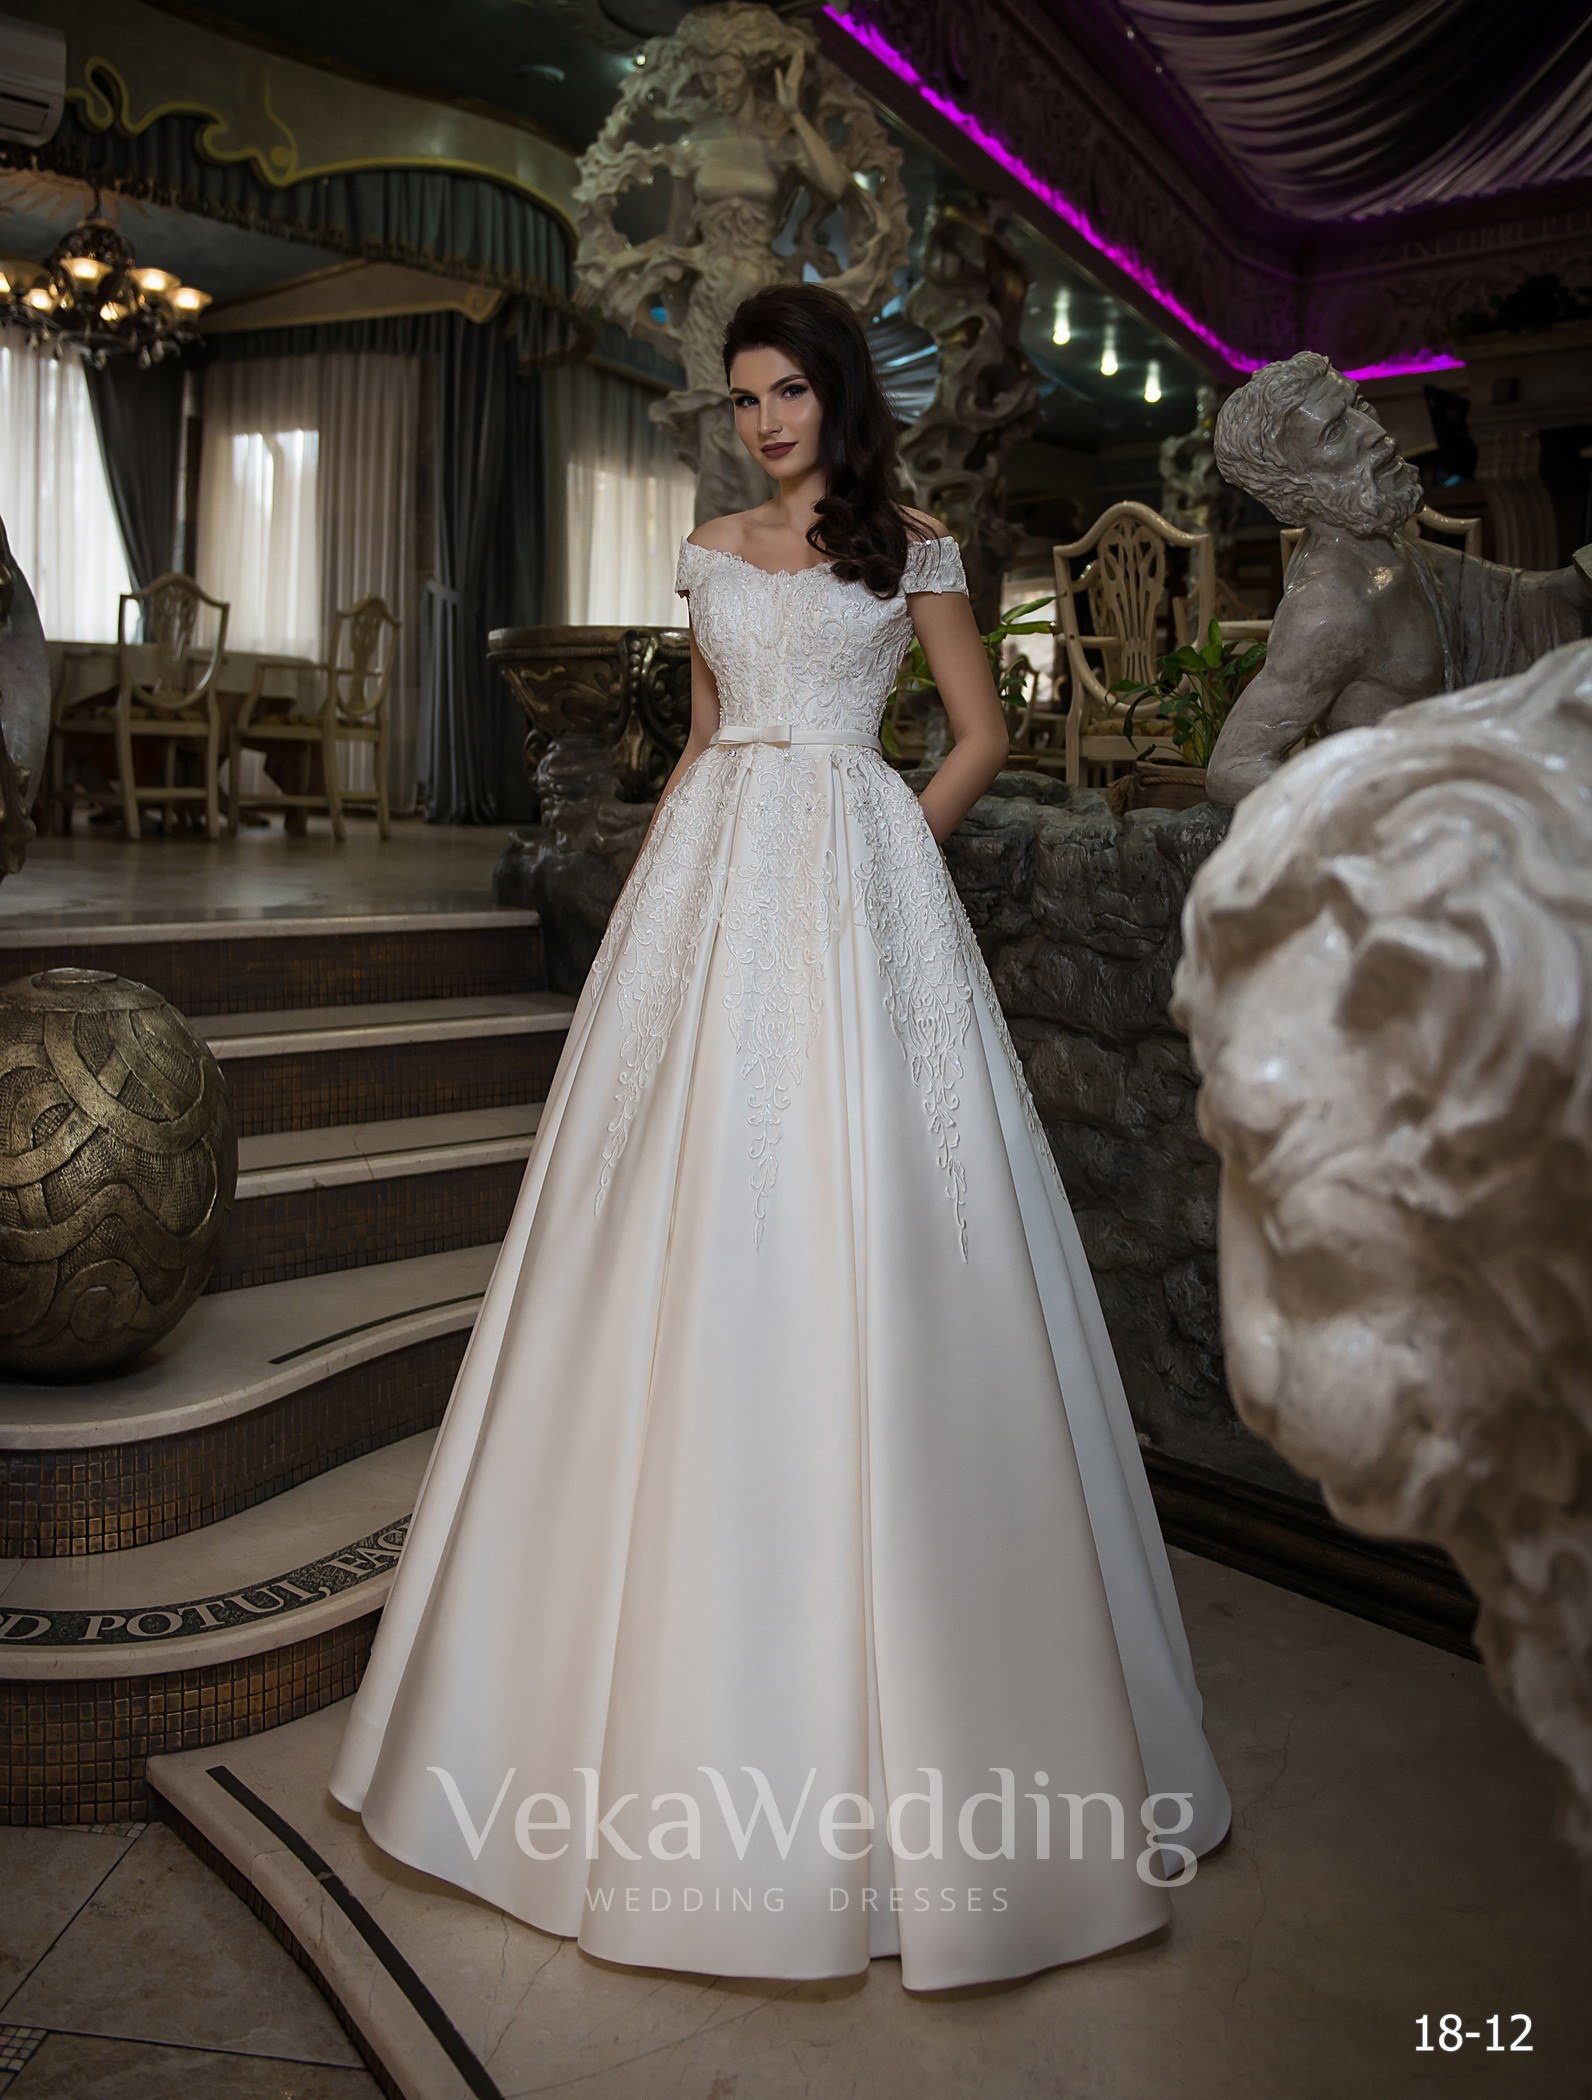 https://vekawedding.com/images/stories/virtuemart/product/18-12-------(1).jpg